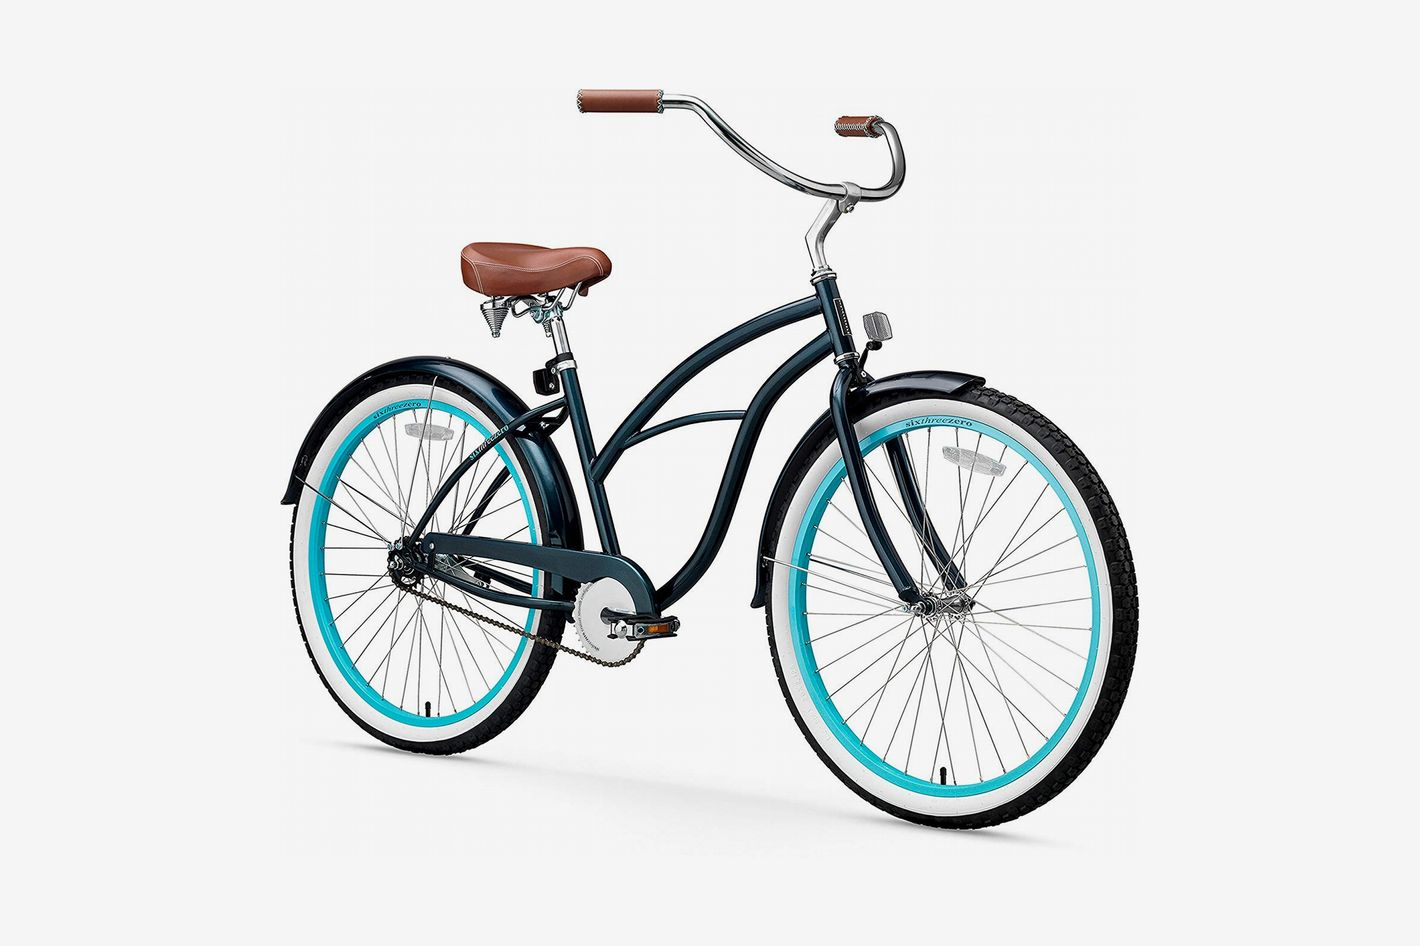 bfe8a3f0a9b 12 Best Cruiser Bikes for Men and Women 2018